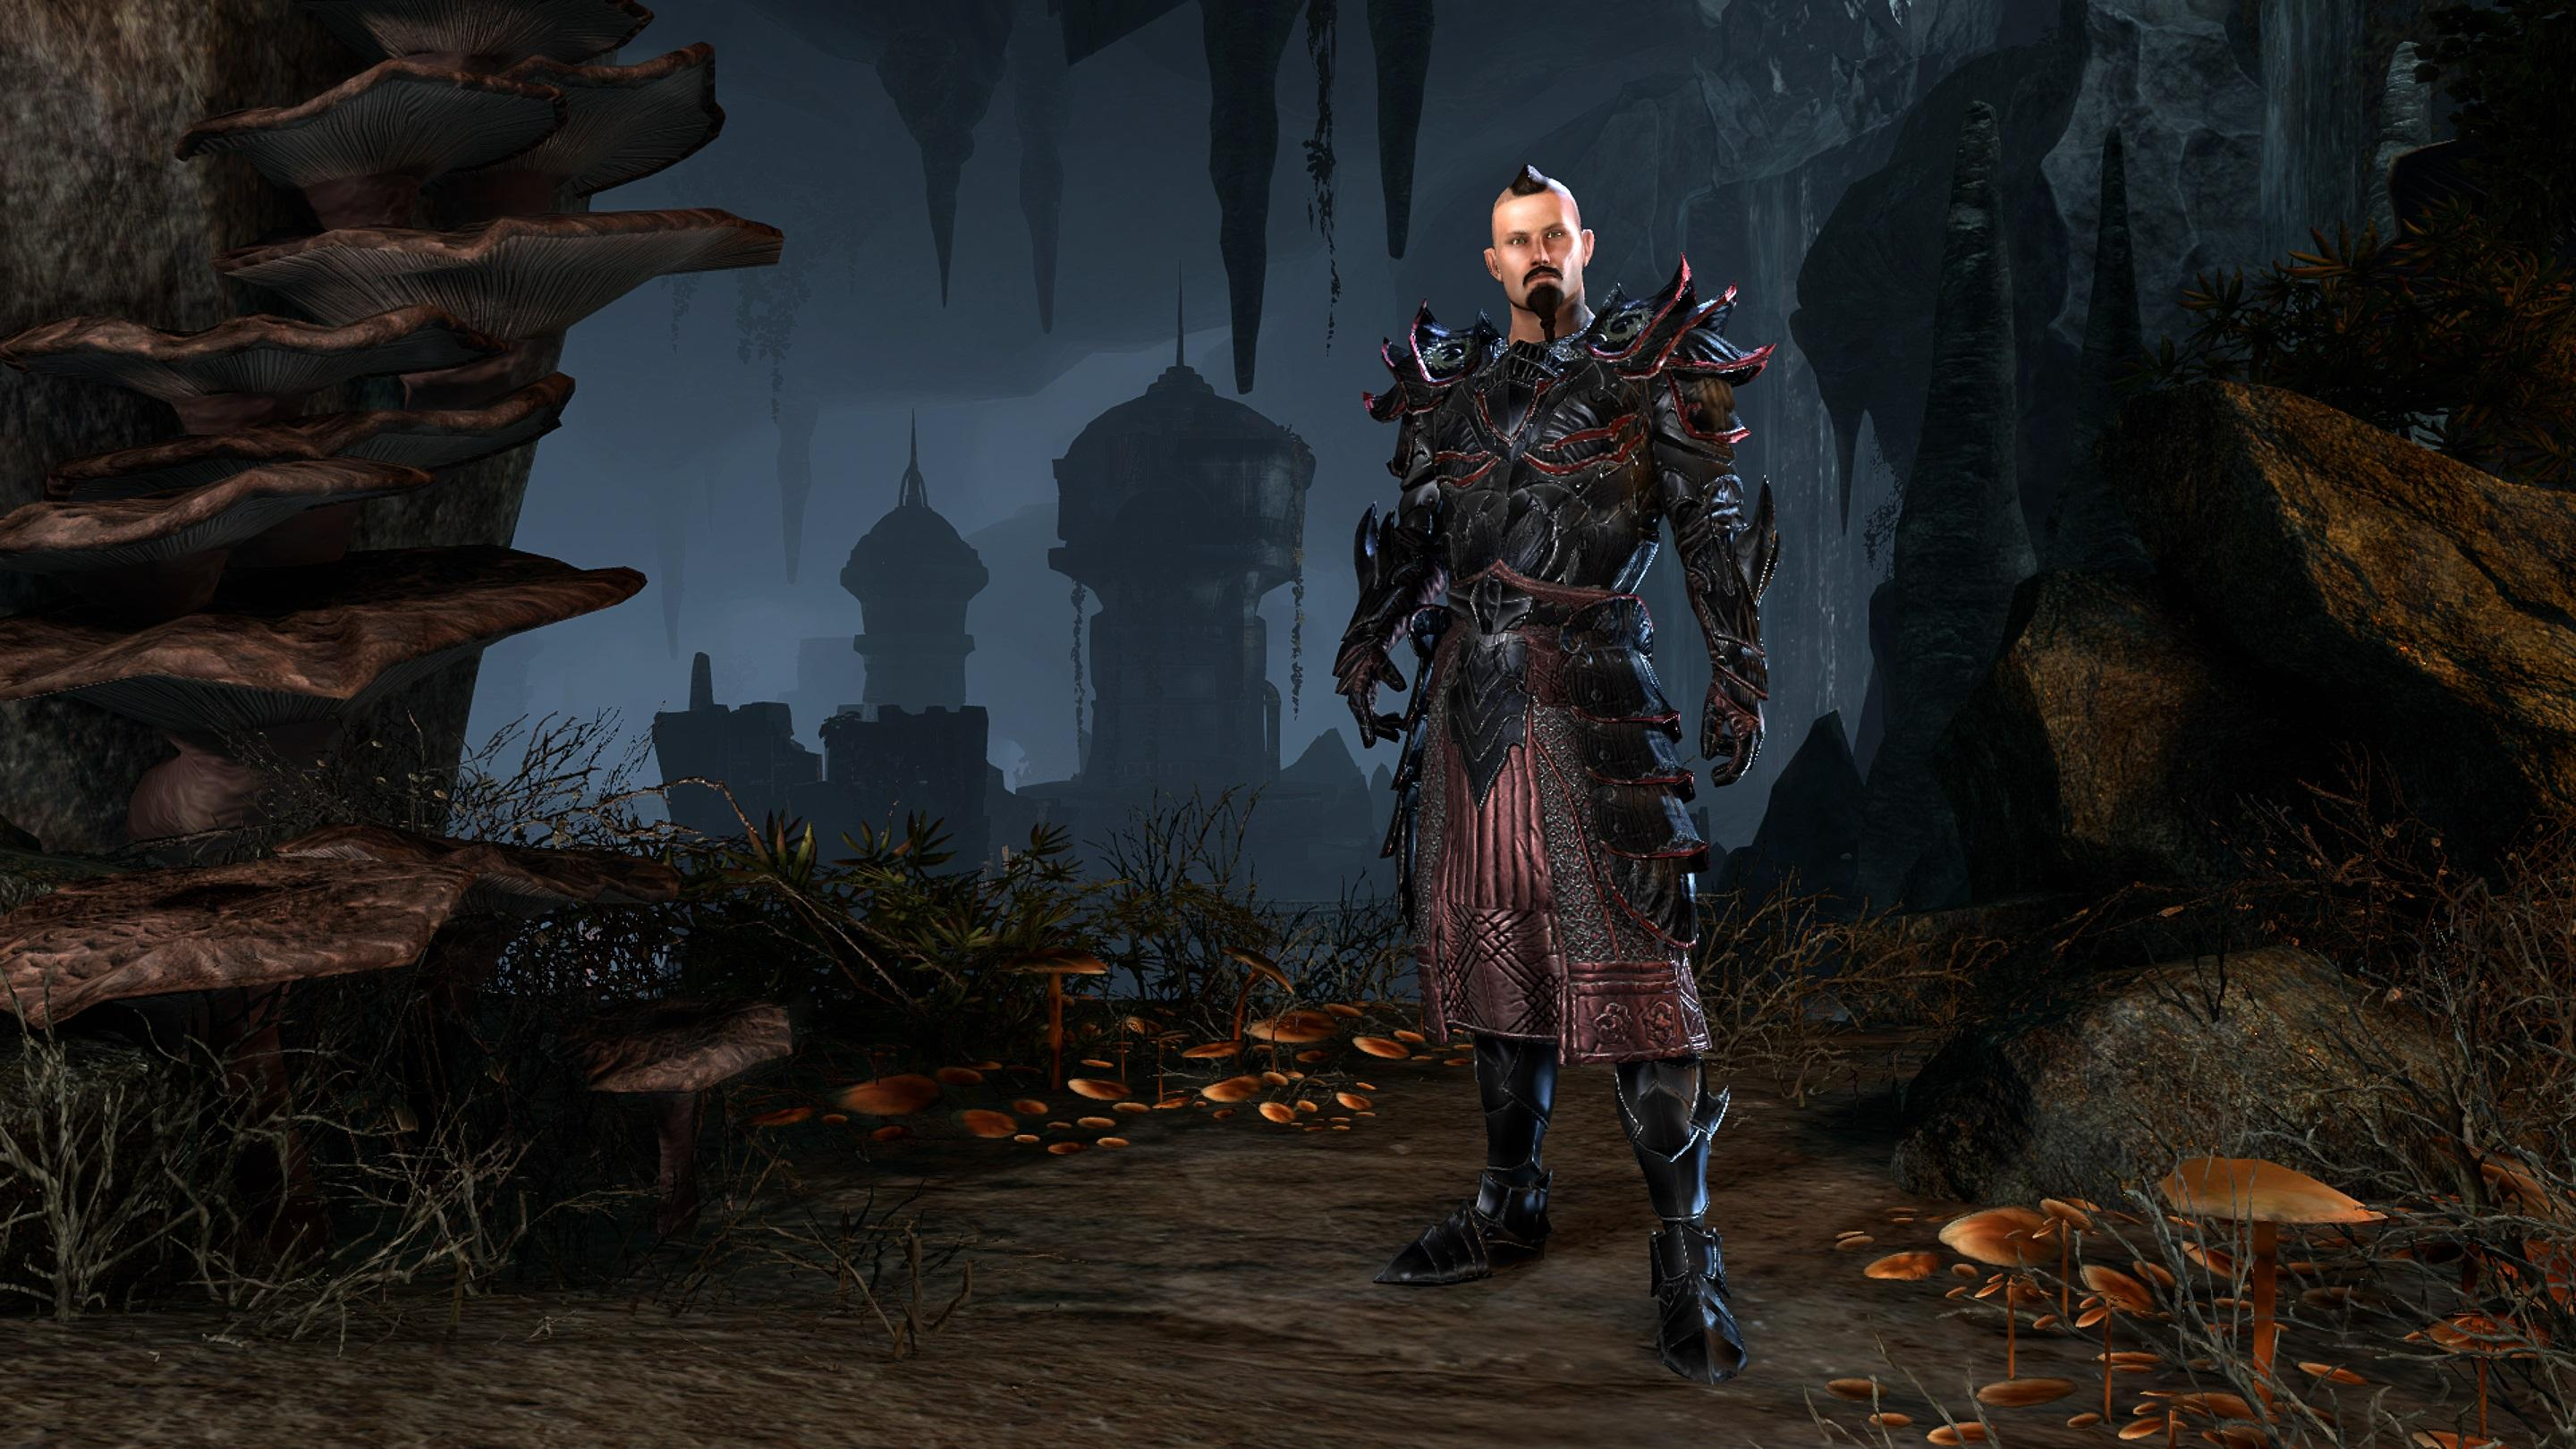 The Elder Scrolls Online New Items In Crown Store! | Fextralife